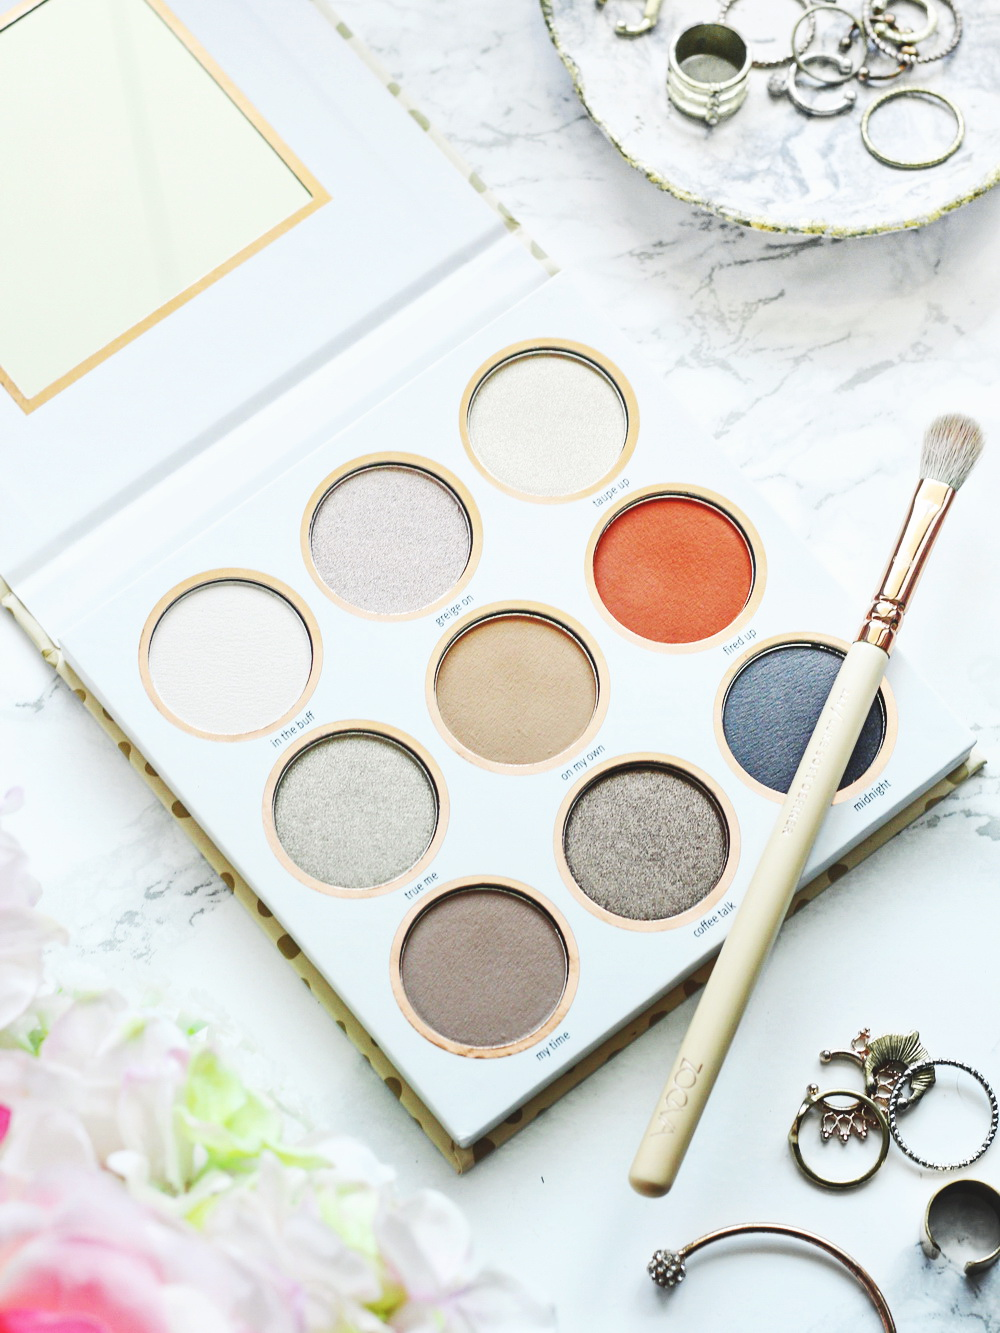 essence be you tiful eyeshadow palette